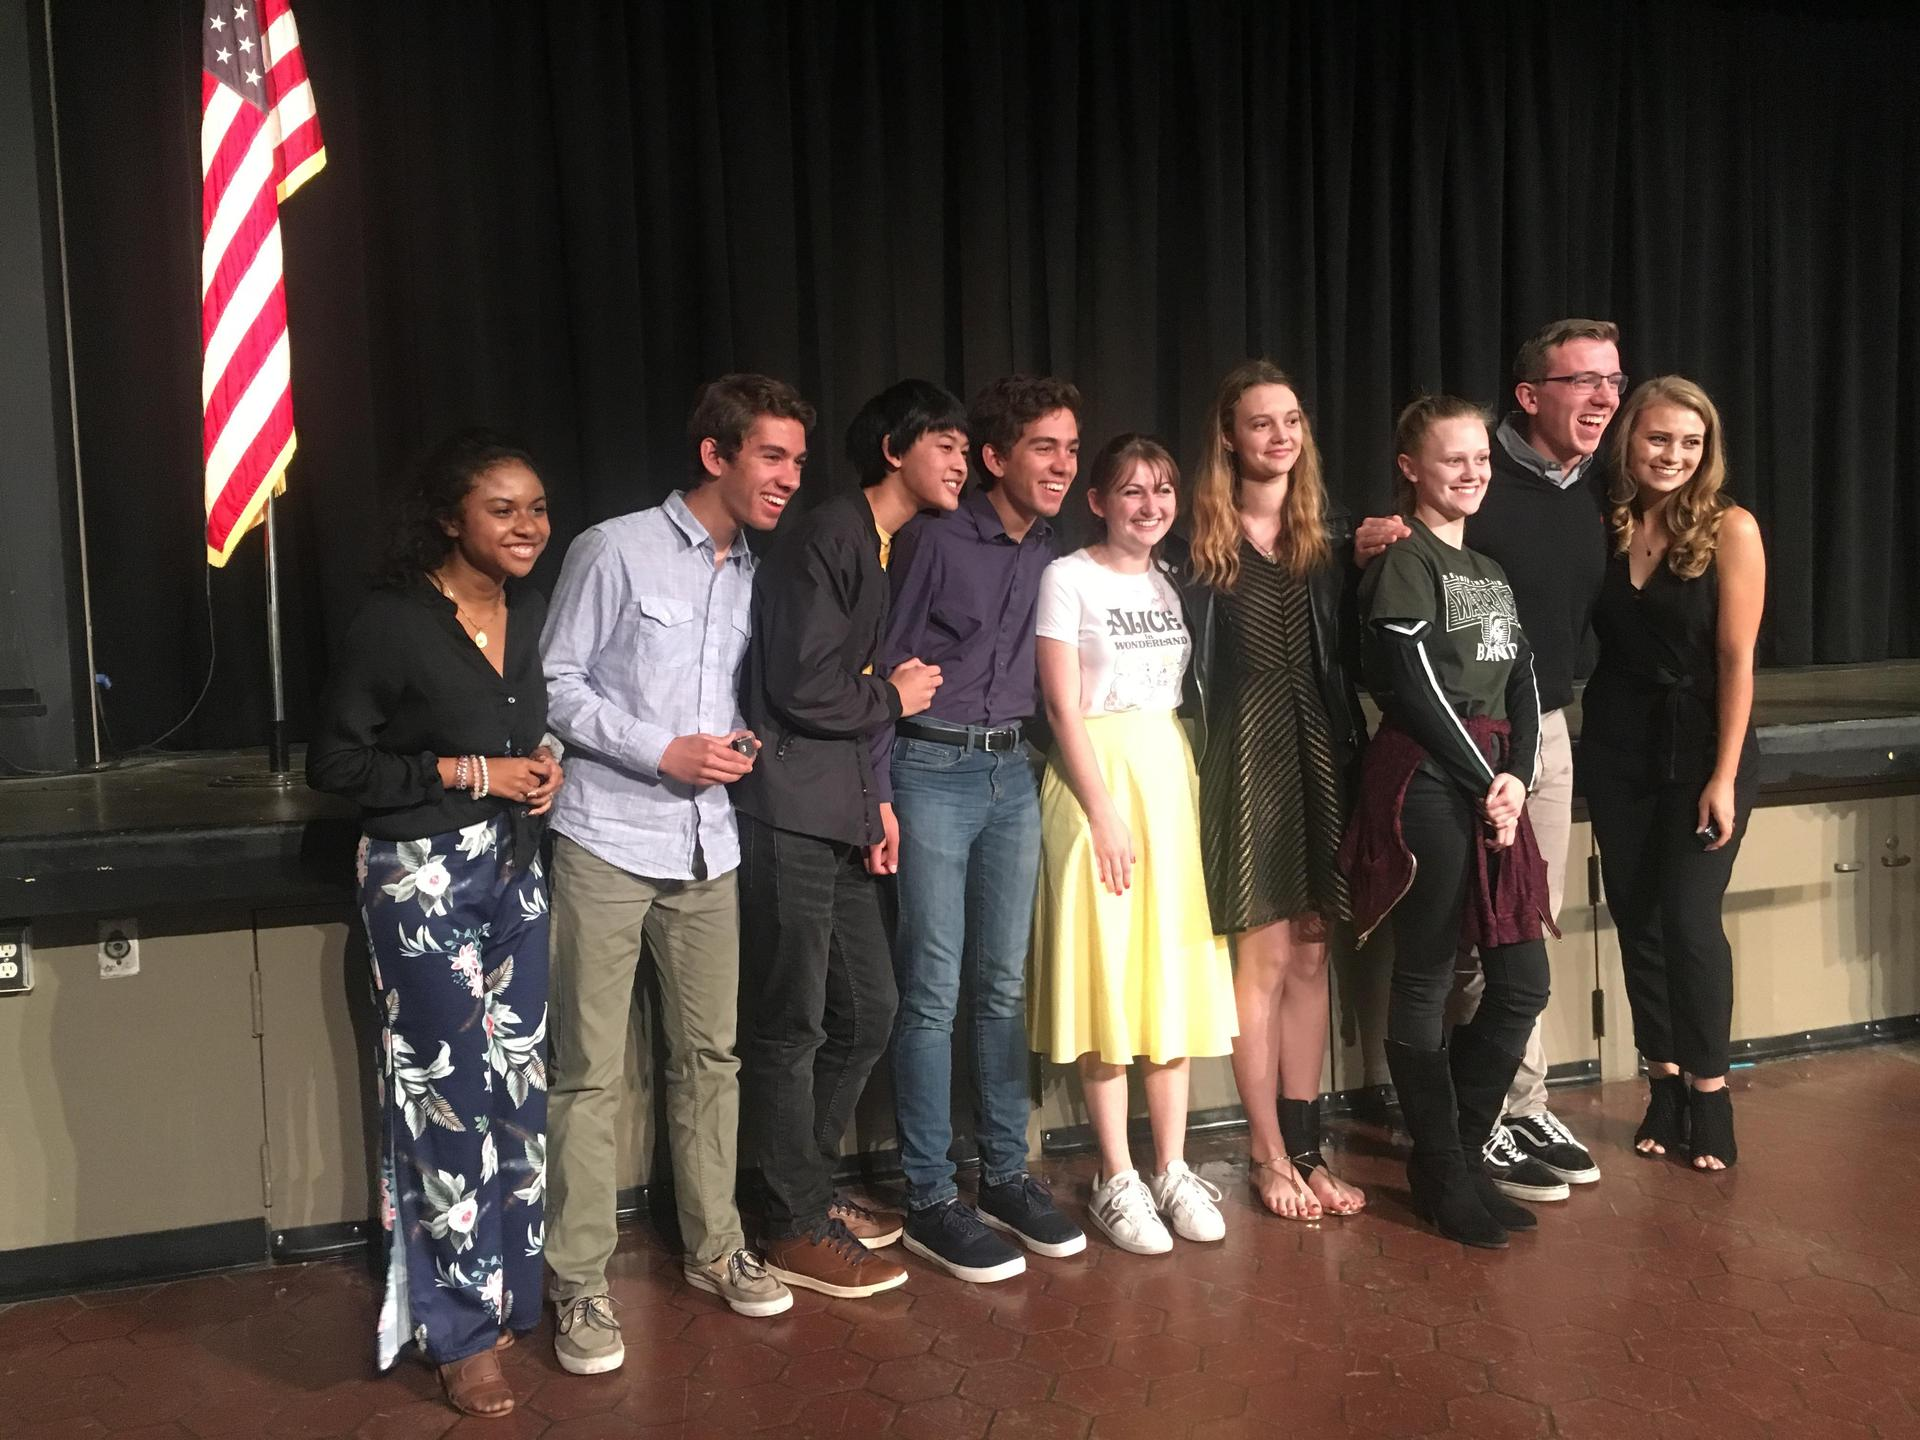 648a82f18 We celebrated the seniors and all the hard work their hard work this year  at a special event this week. We announced our 2019 Valedictorians and ...